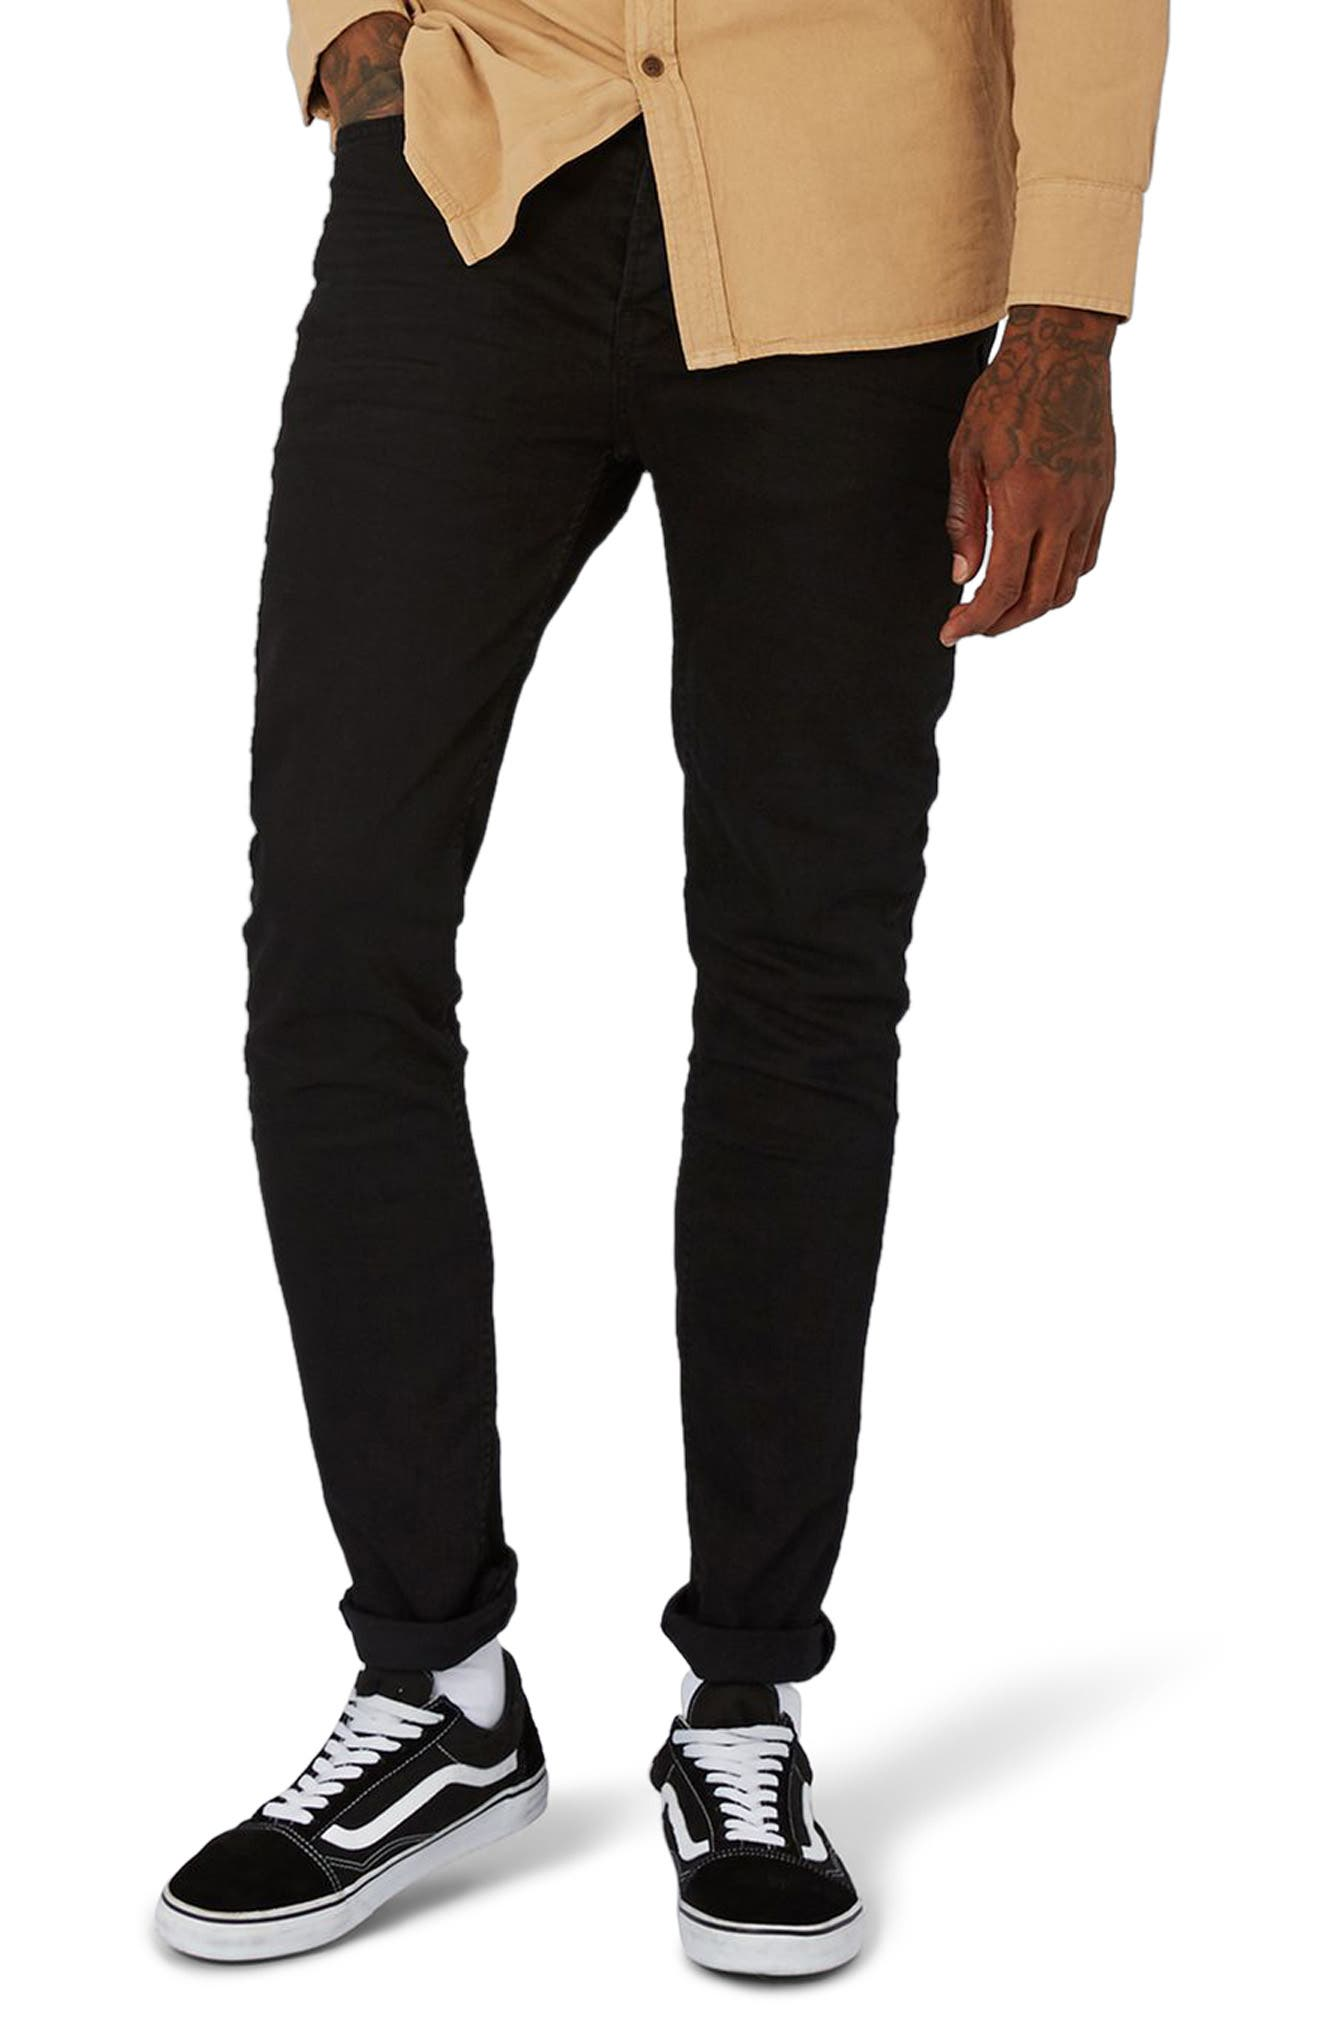 Overdyed Stretch Skinny Jeans,                         Main,                         color, Black